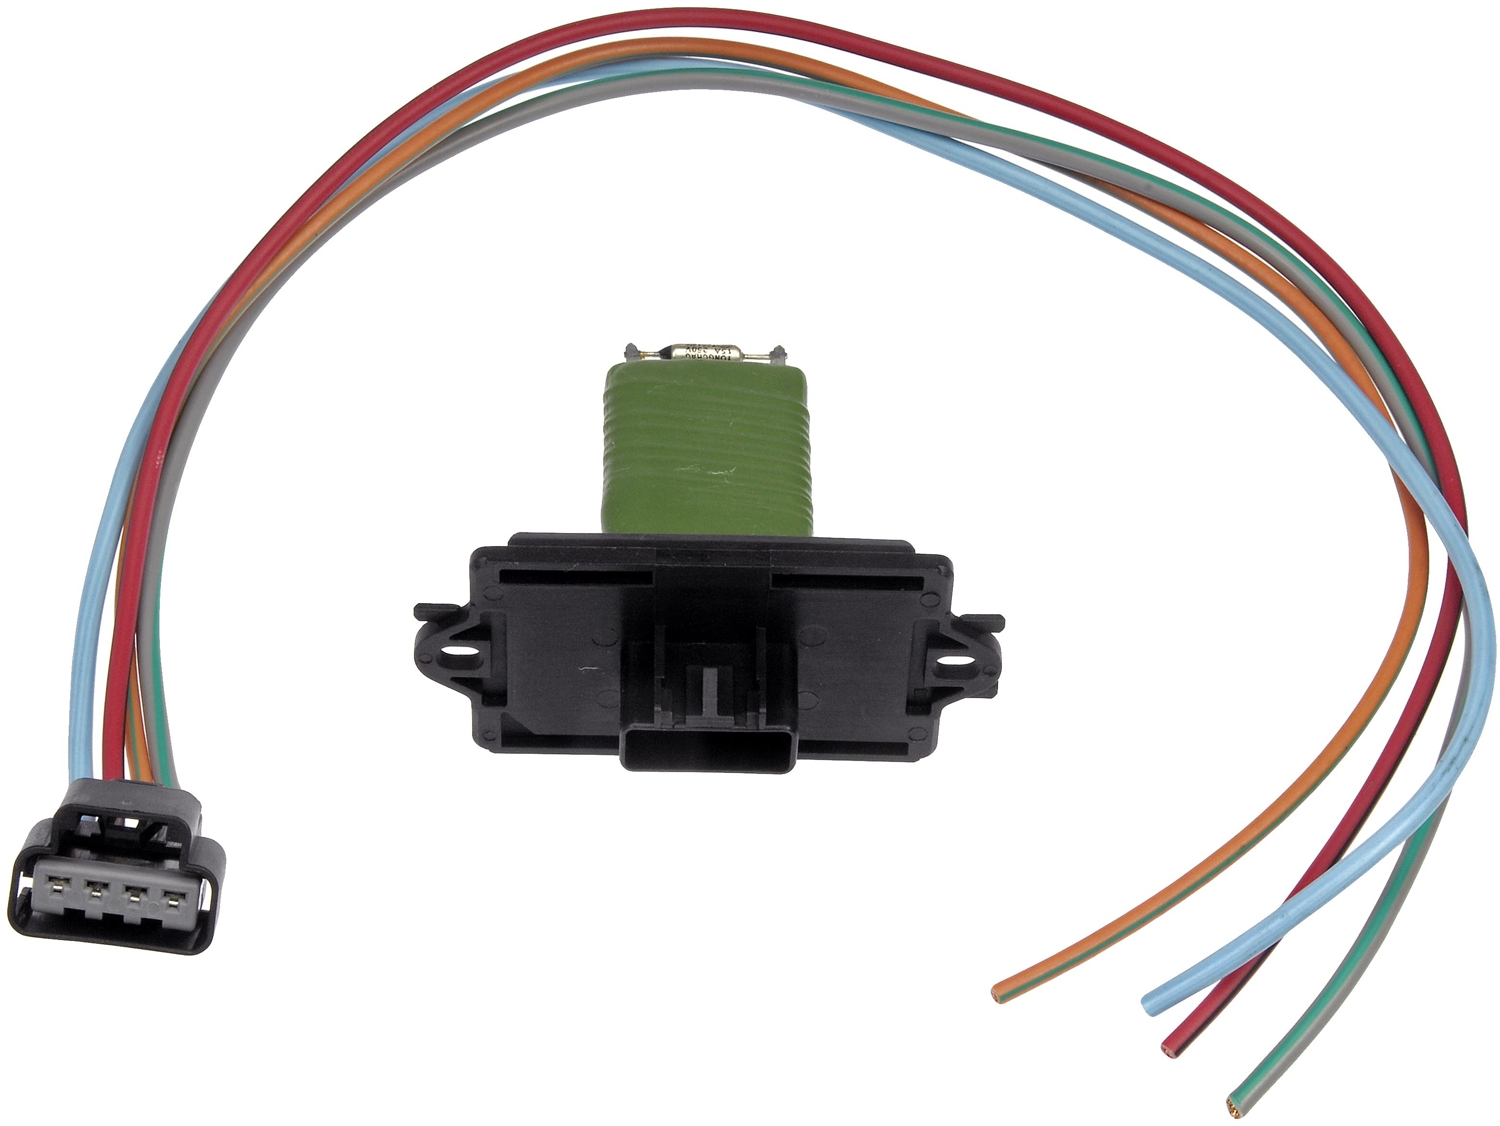 973-404 Dorman Blower Motor Speed Resistor and Harness Pigtail